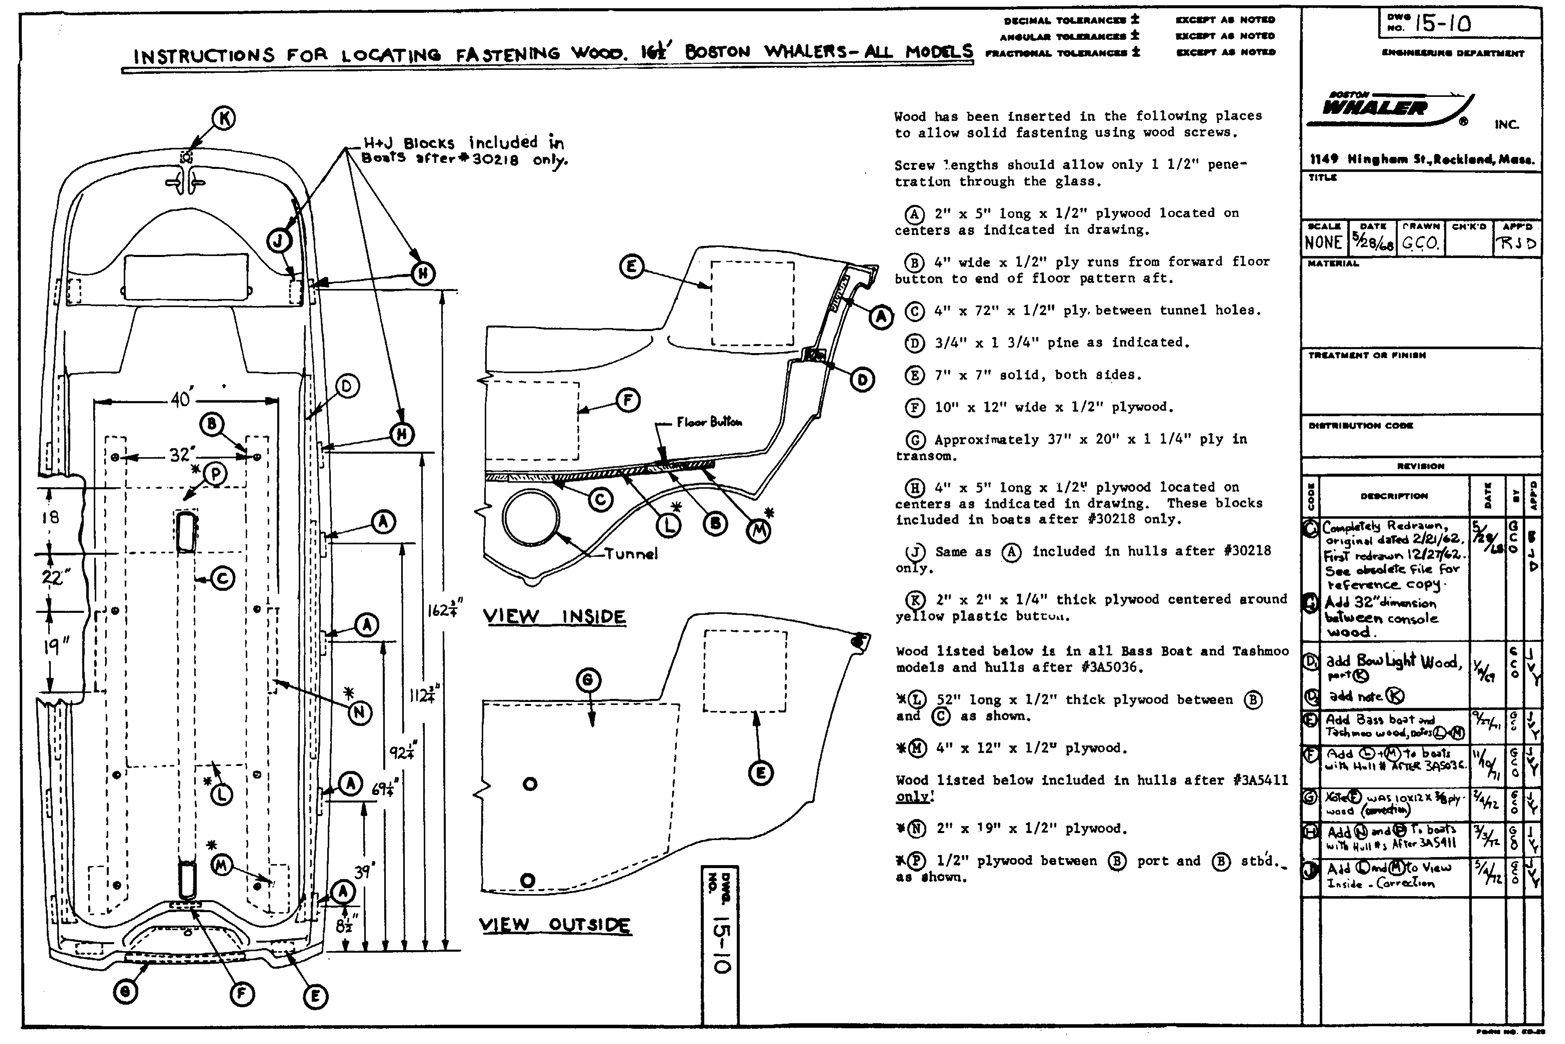 Shaw Box Hoist Wiring Diagram 29 Images Stahl Chain 16wooddwg15 10resize6652c444 Yale